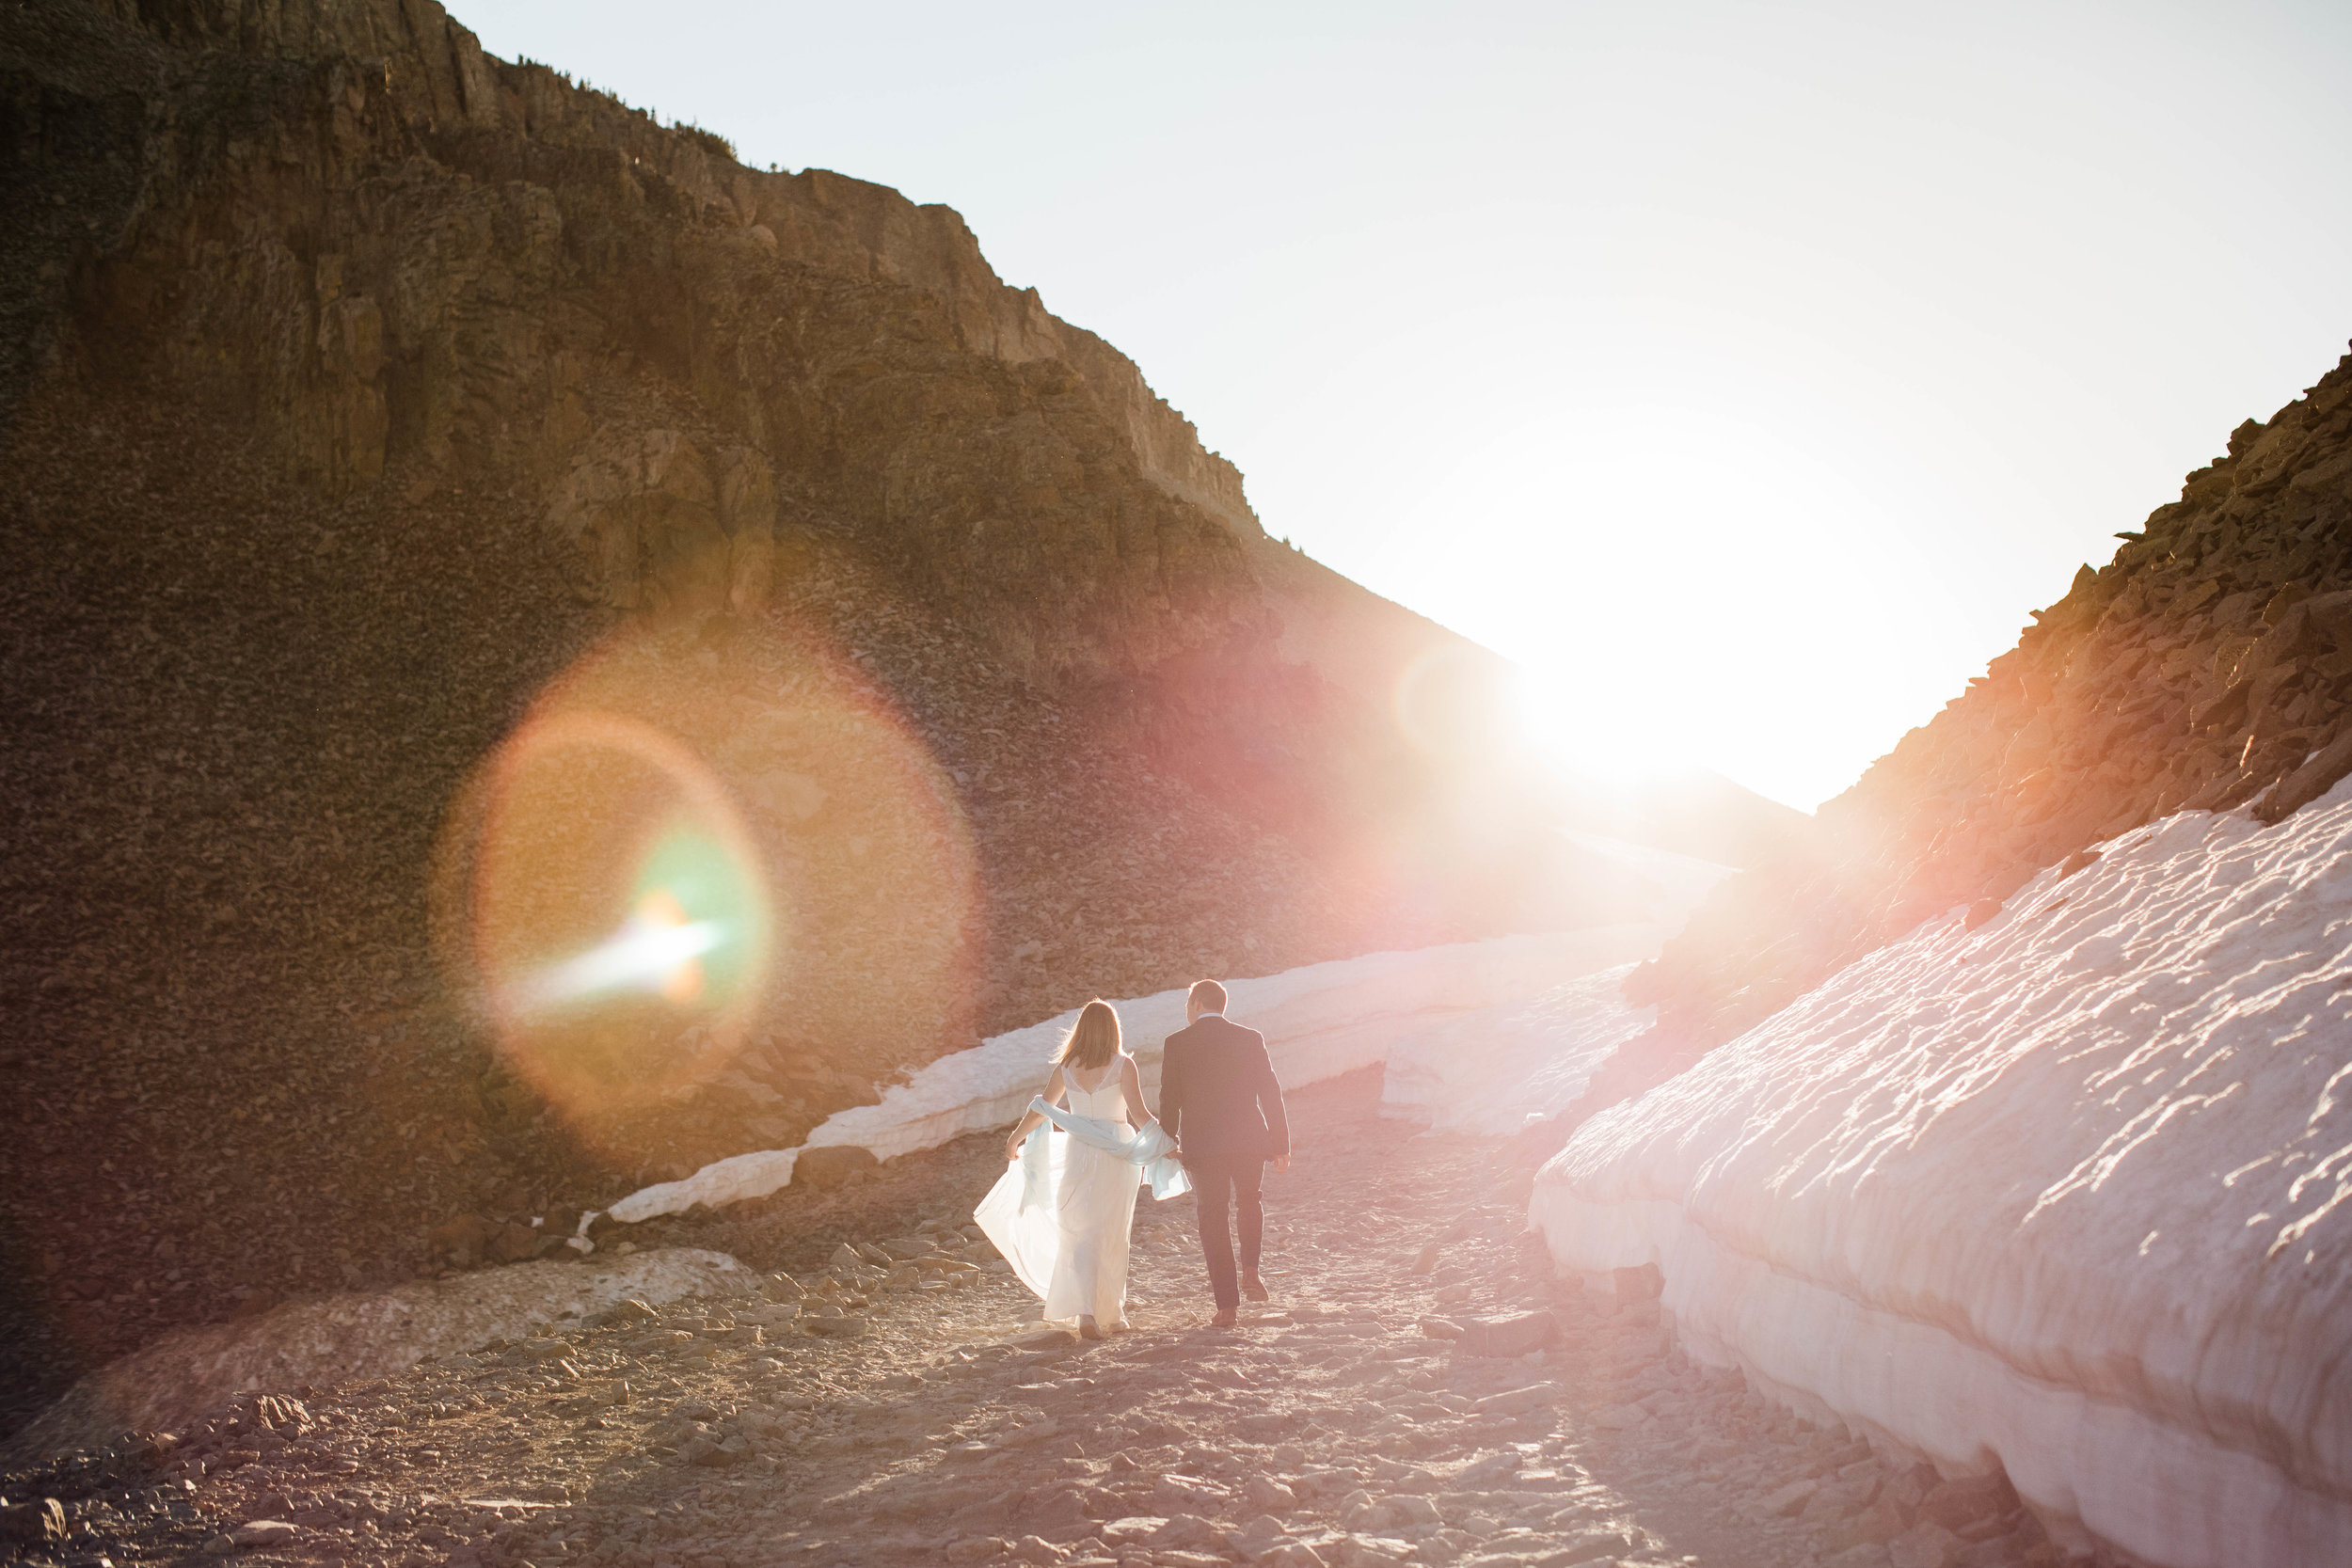 Adventure mountain elopement near Telluride Colorado | best adventure elopement photographers based in the San Juan mountains